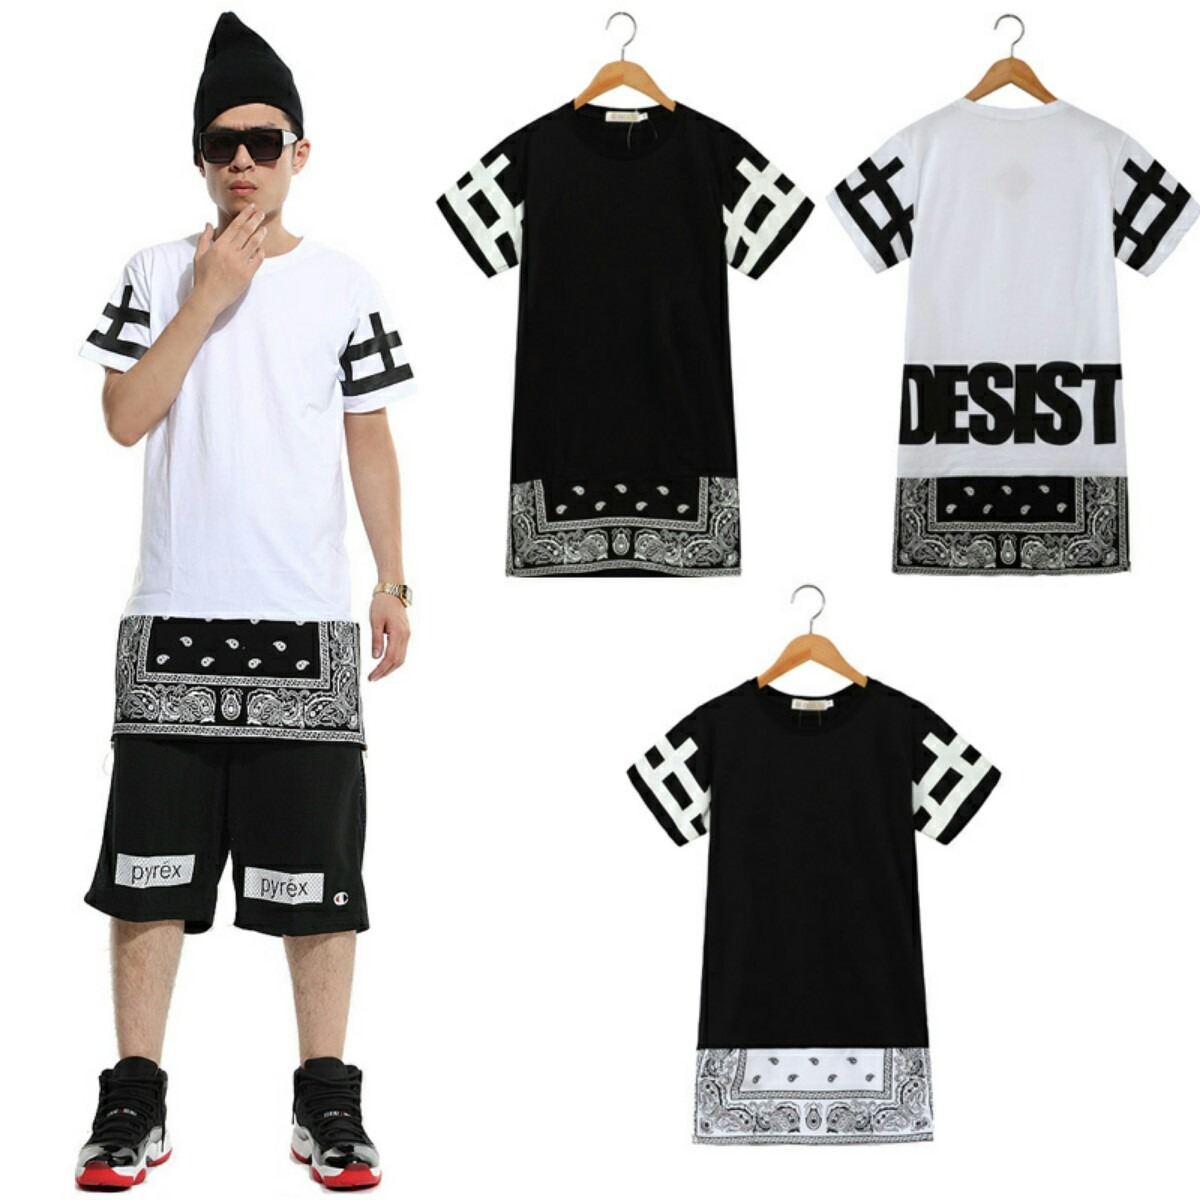 Camisa swag luxo top quality hip hop desist r 99 90 no mercadolivre Fashion homme style swag